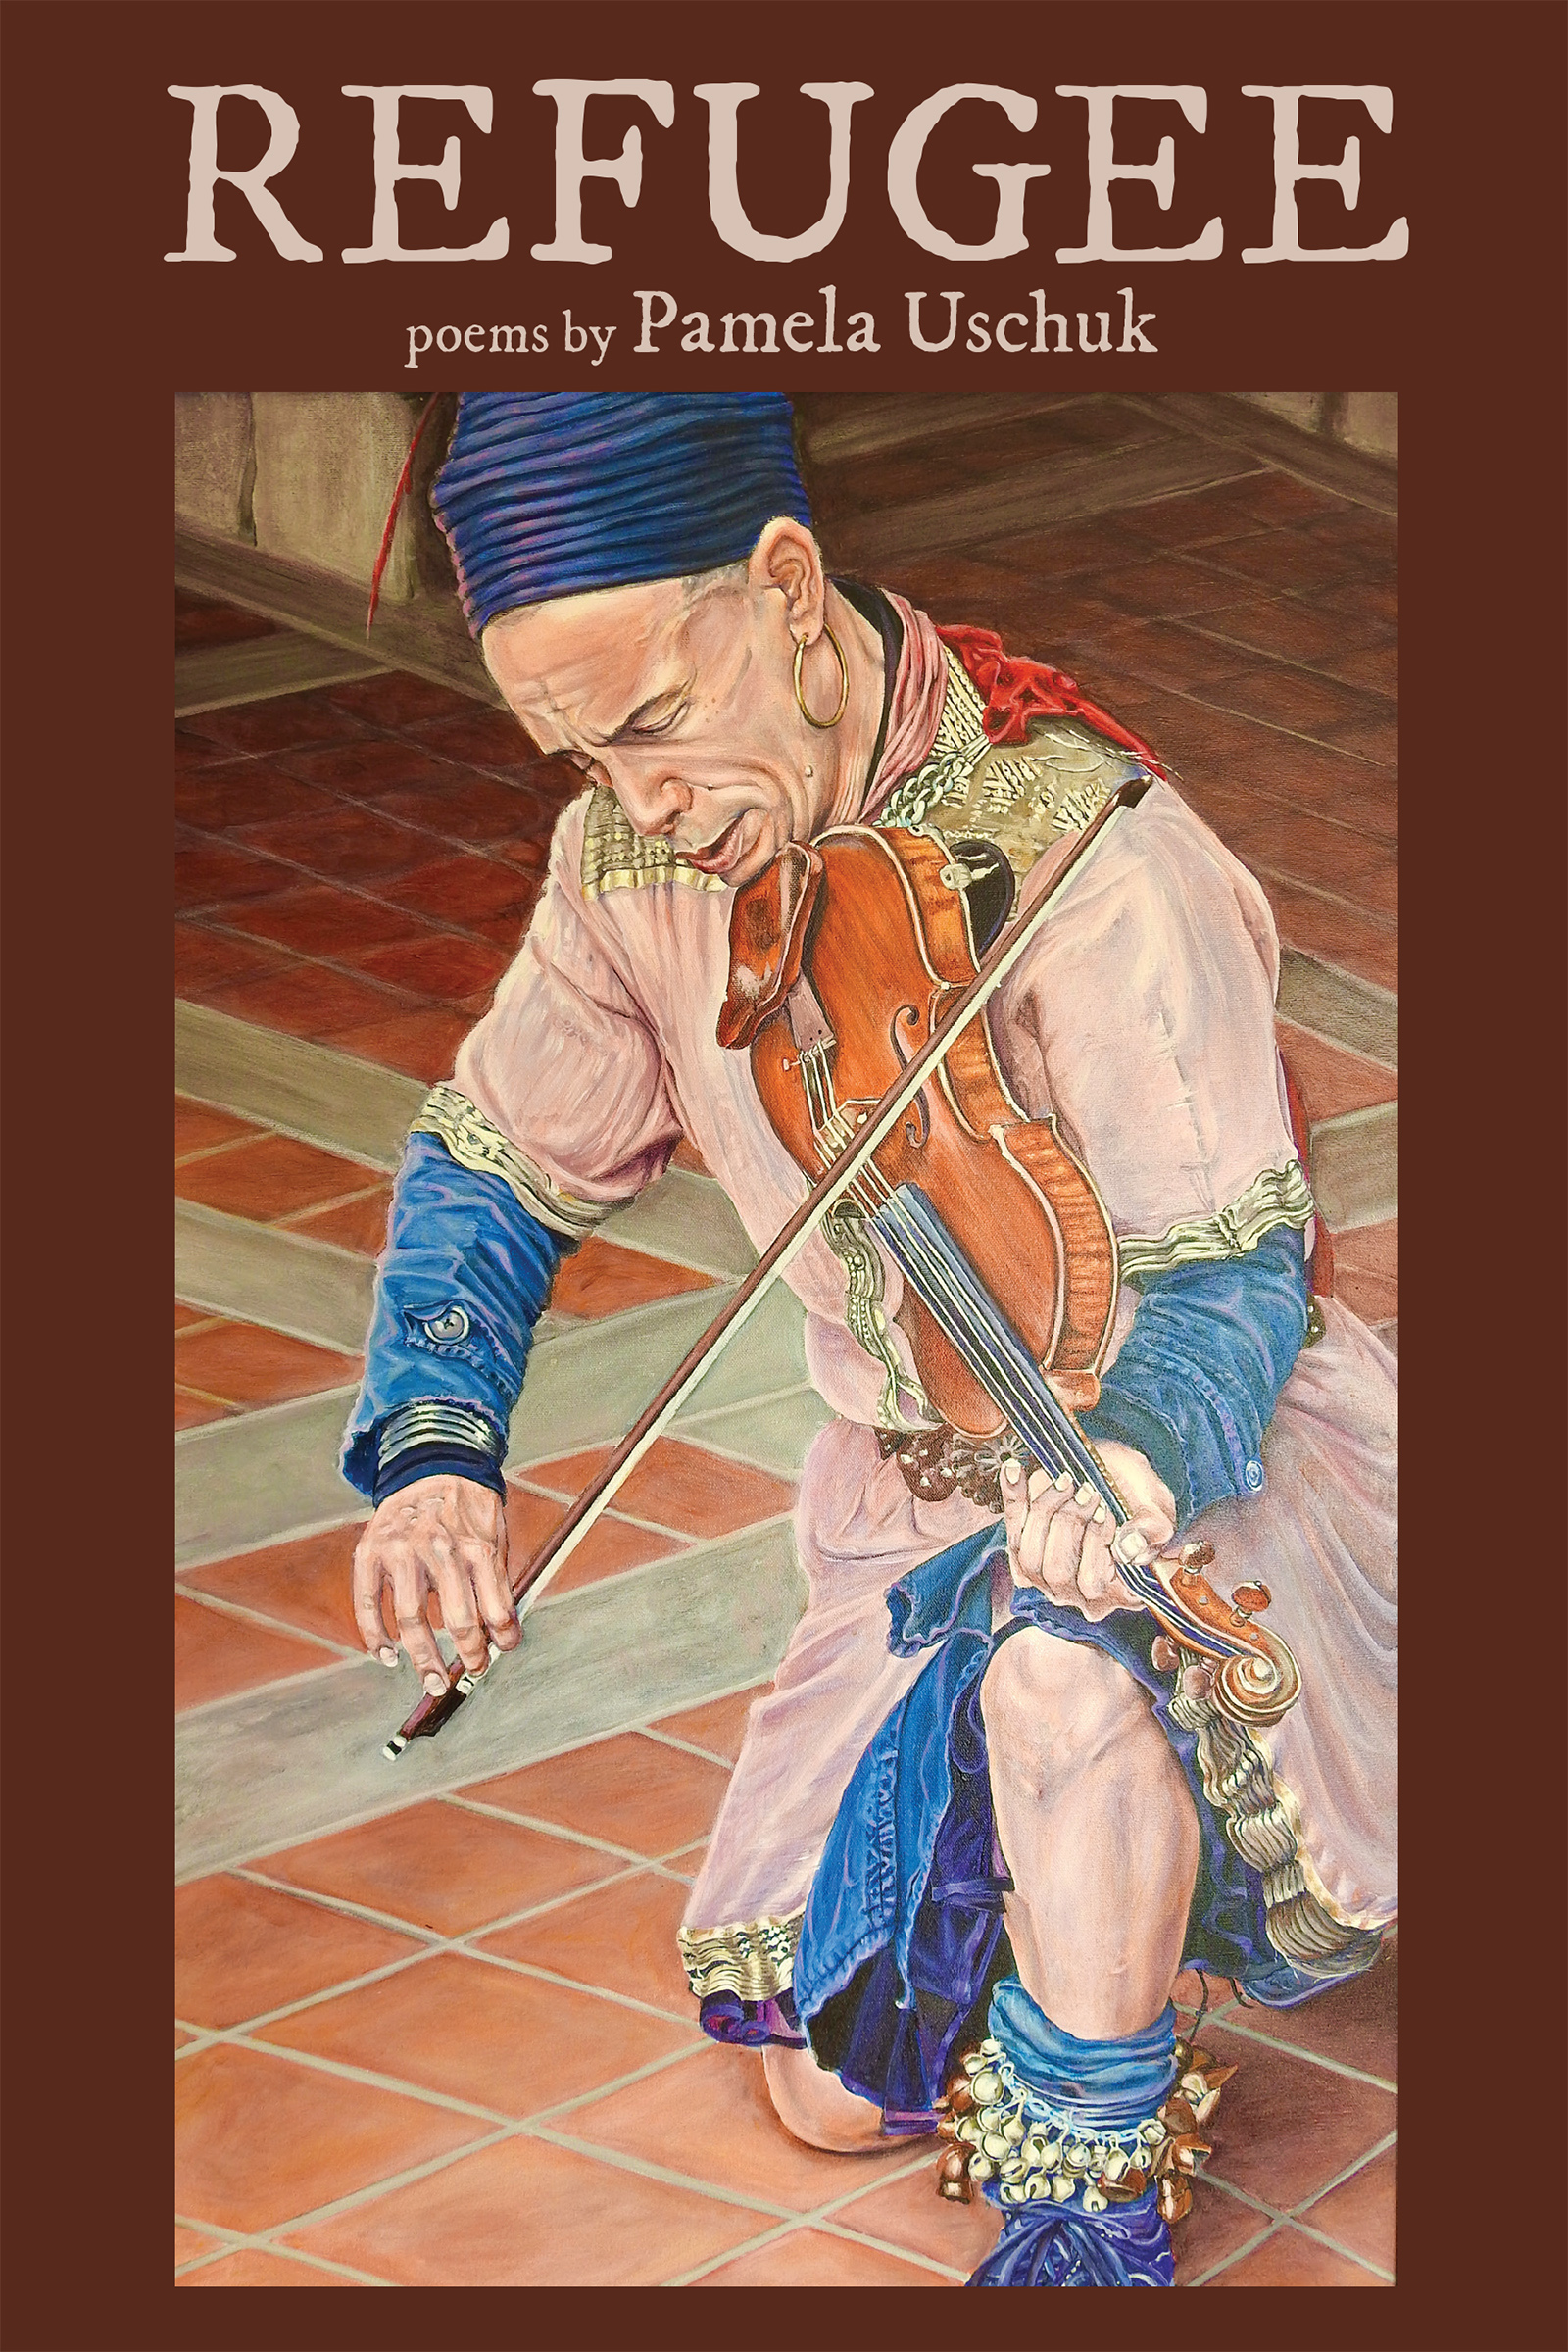 A brown cover with cream text that reads Refugee poems by Pamela Uschuk over a detailed painting of man playing the violin dressed in traditional clothing.